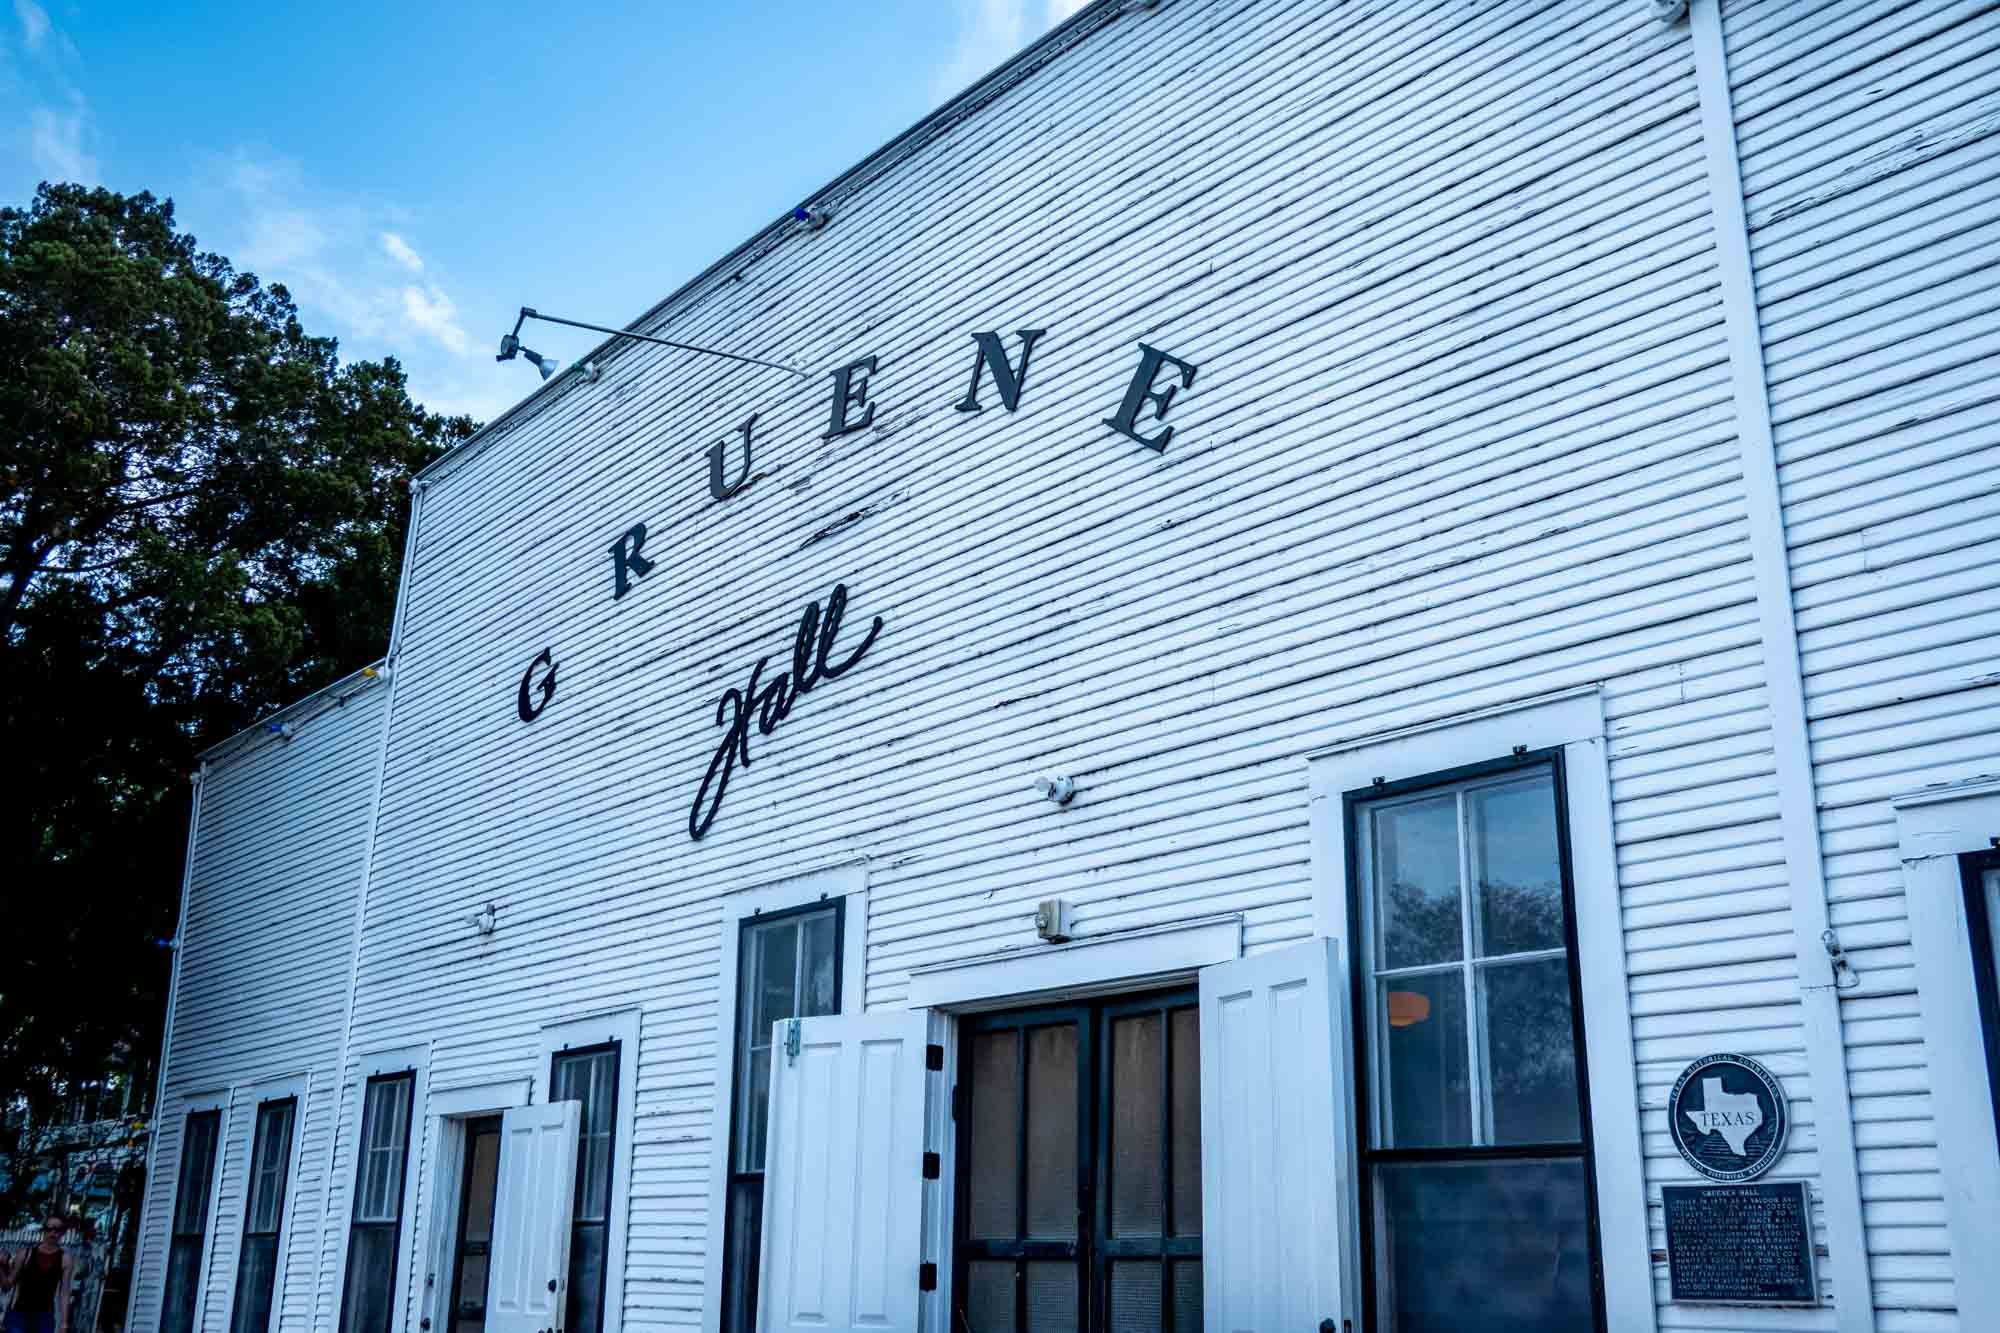 White clapboard exterior of a building with a black sign for Gruene Hall